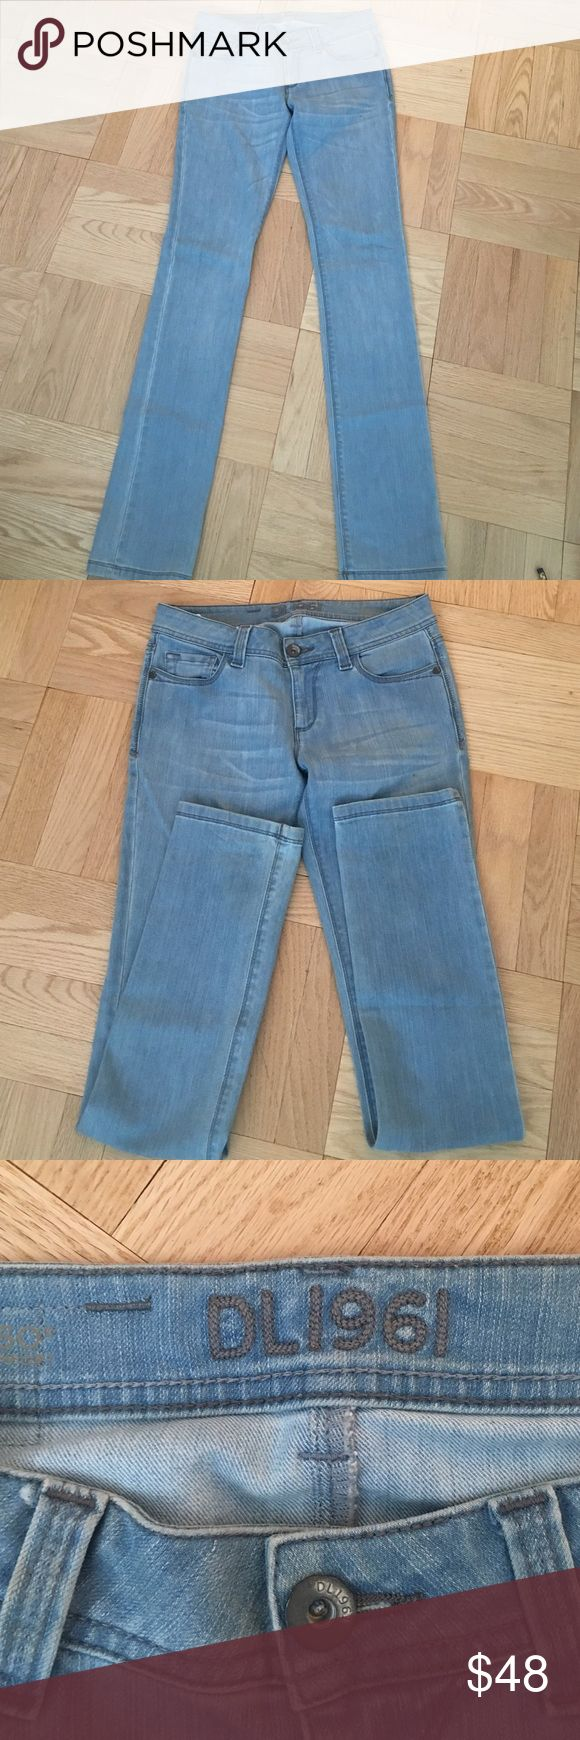 DL1961 light washed jeans Light wash jeans in amazing condition DL1961 Jeans Straight Leg